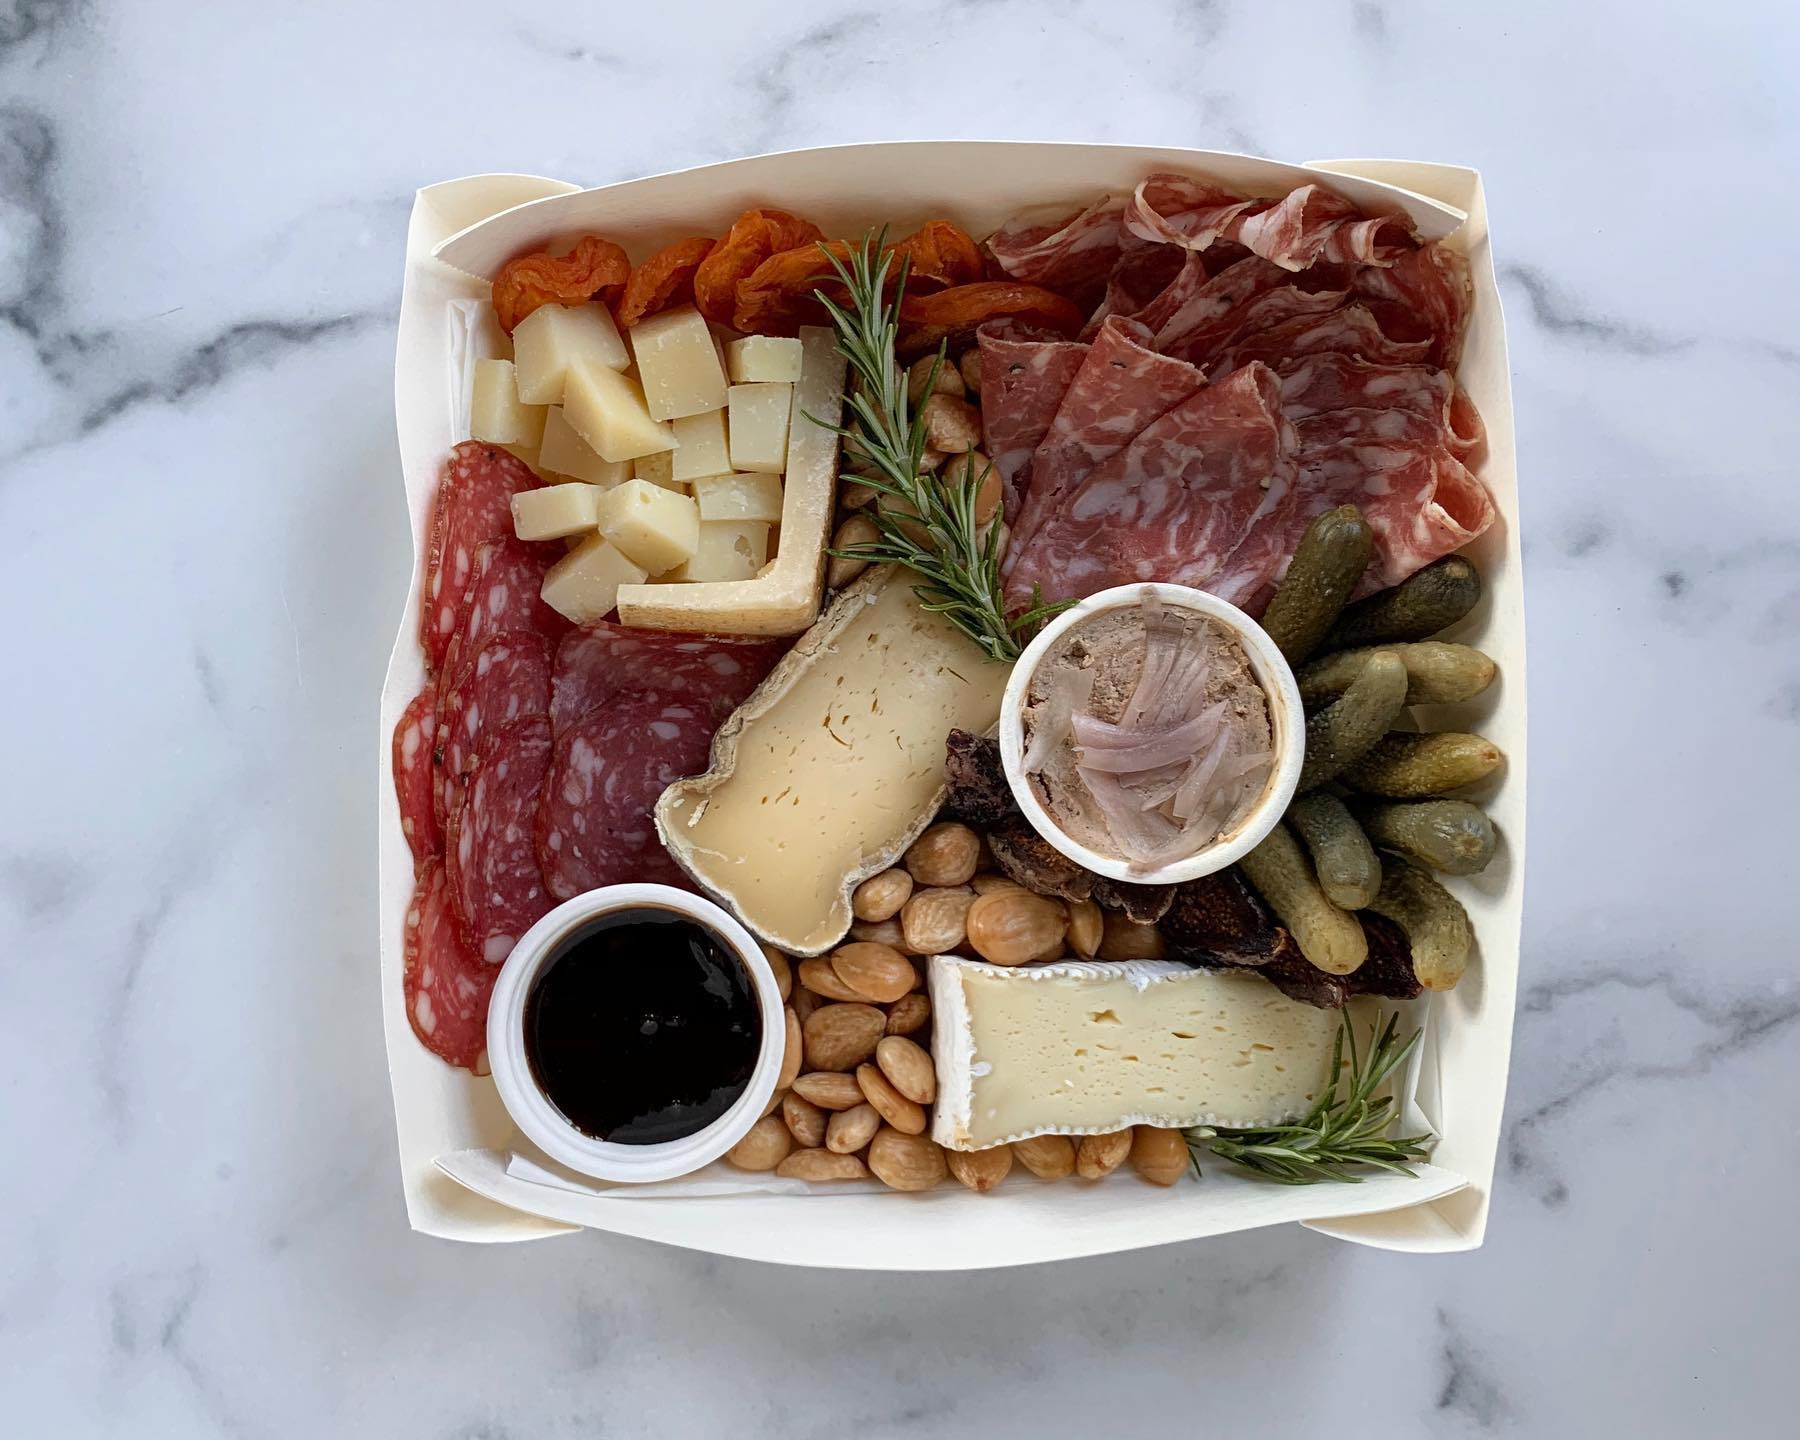 Meat, cheese, pickles, and tinned fish in a takeout box